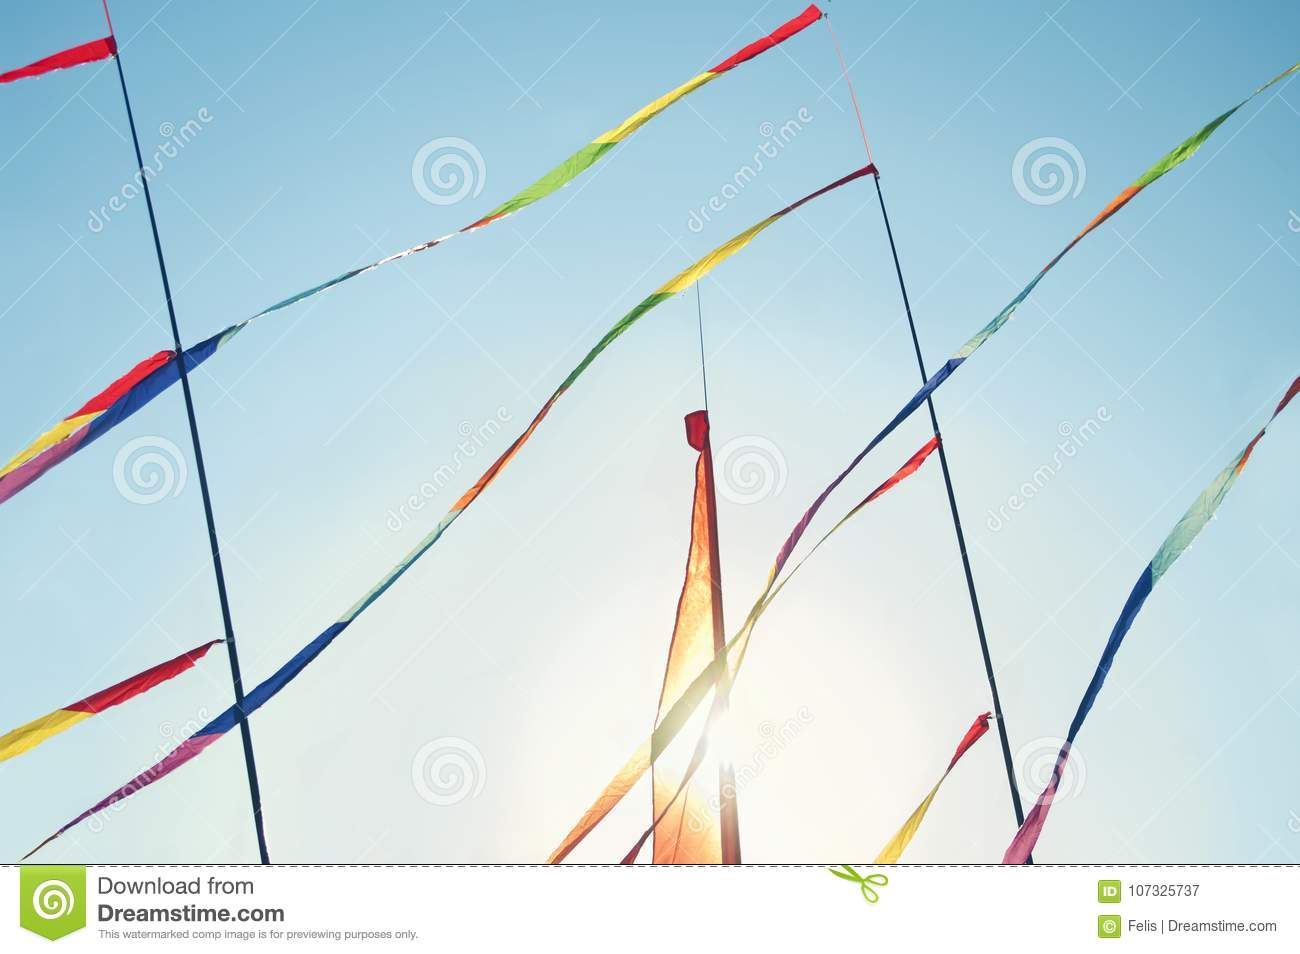 hight resolution of colorful kites flying in wind background